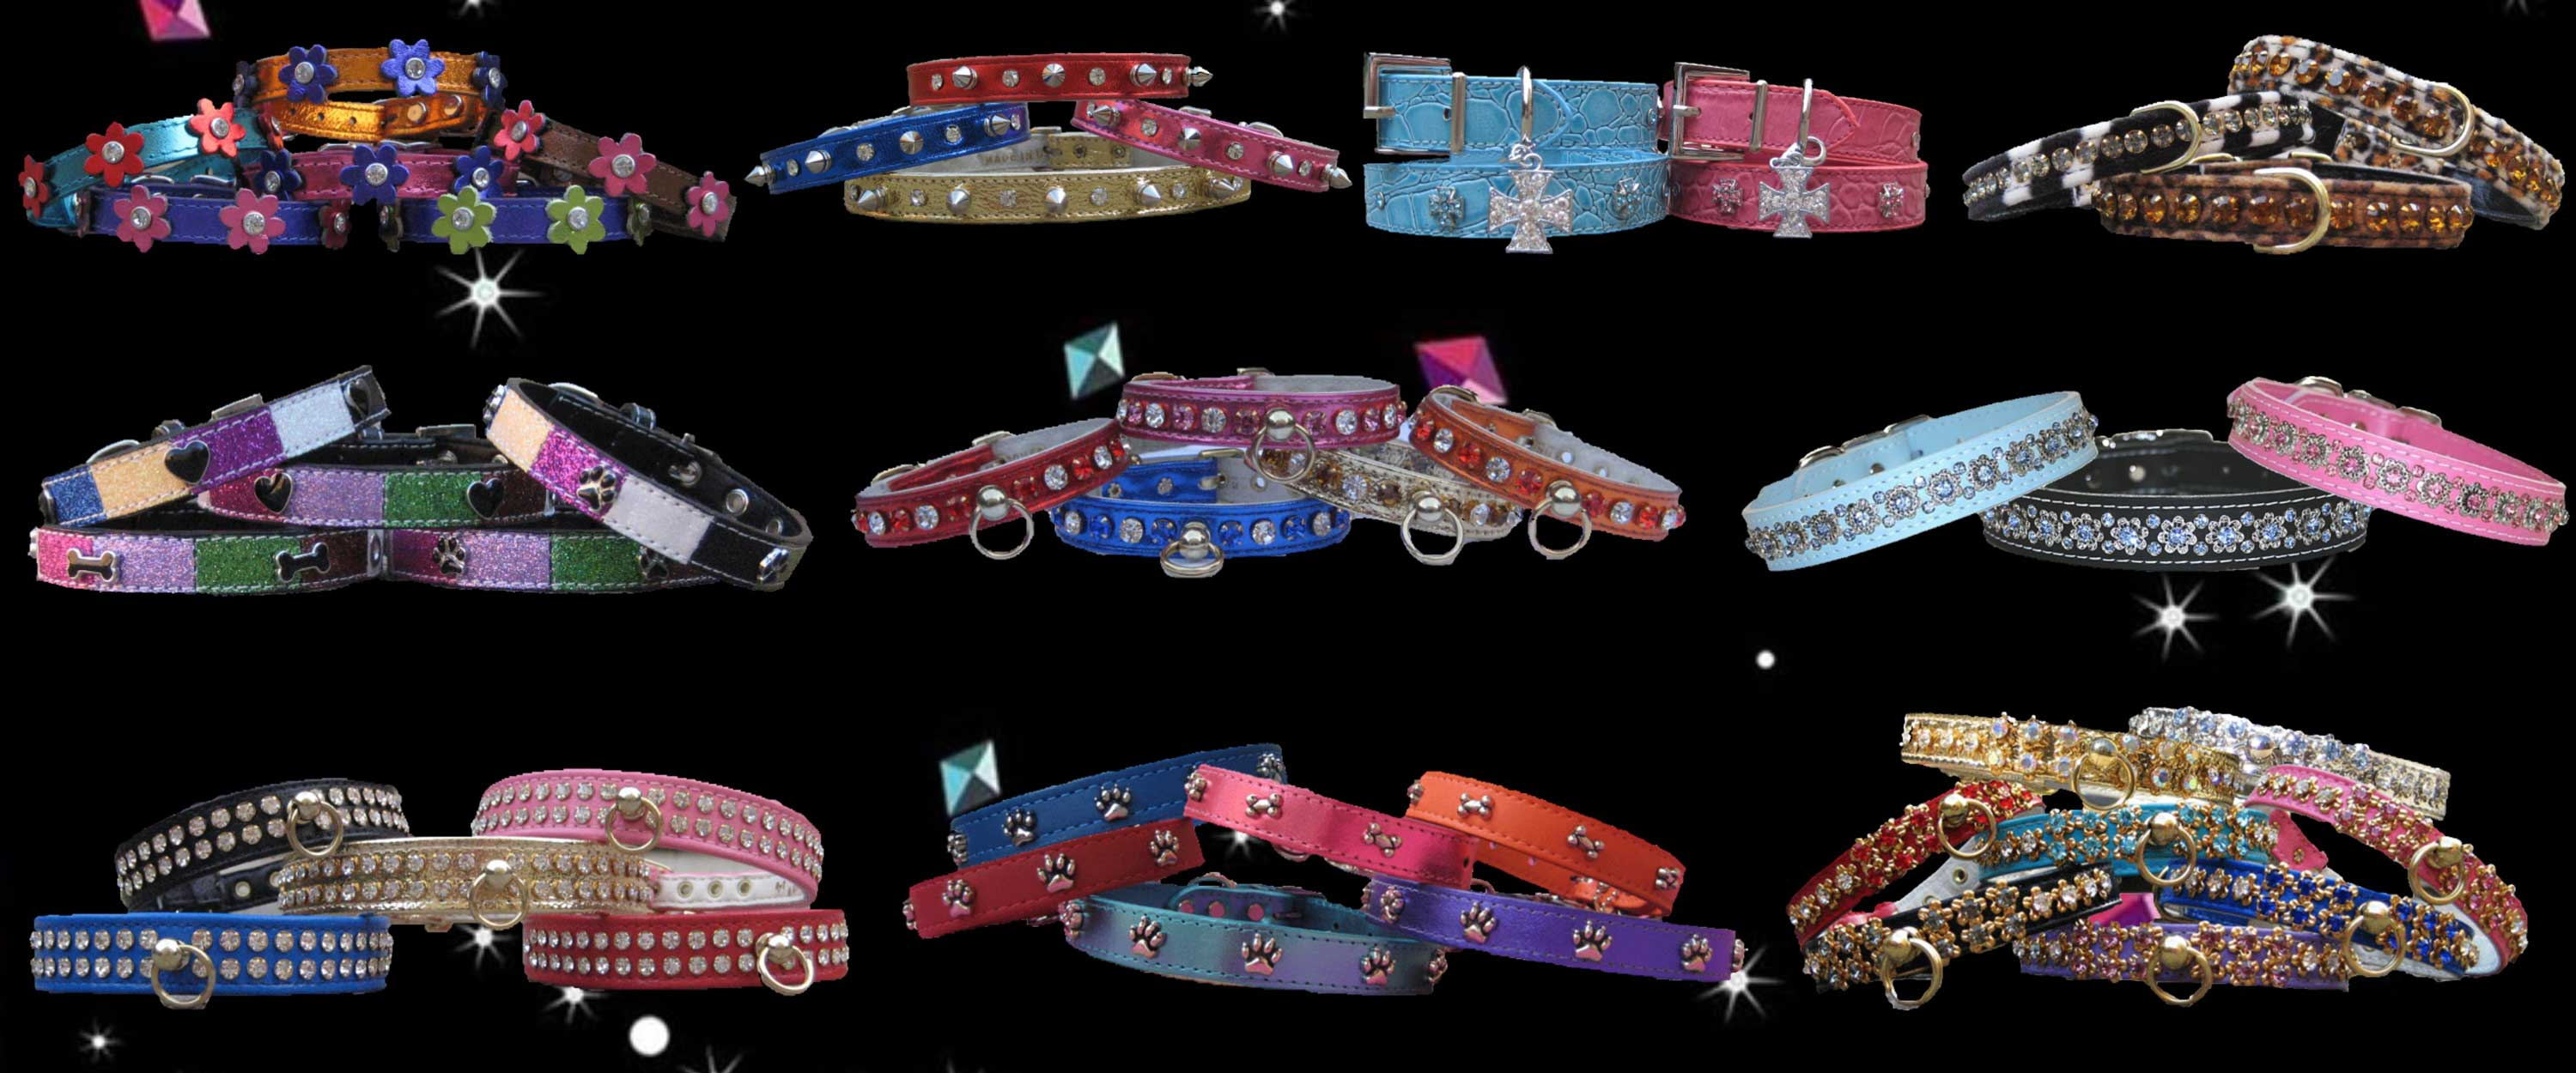 0d62aa04f63f1 Pampered Whiskers - Collars and Hats for Dogs and Cats